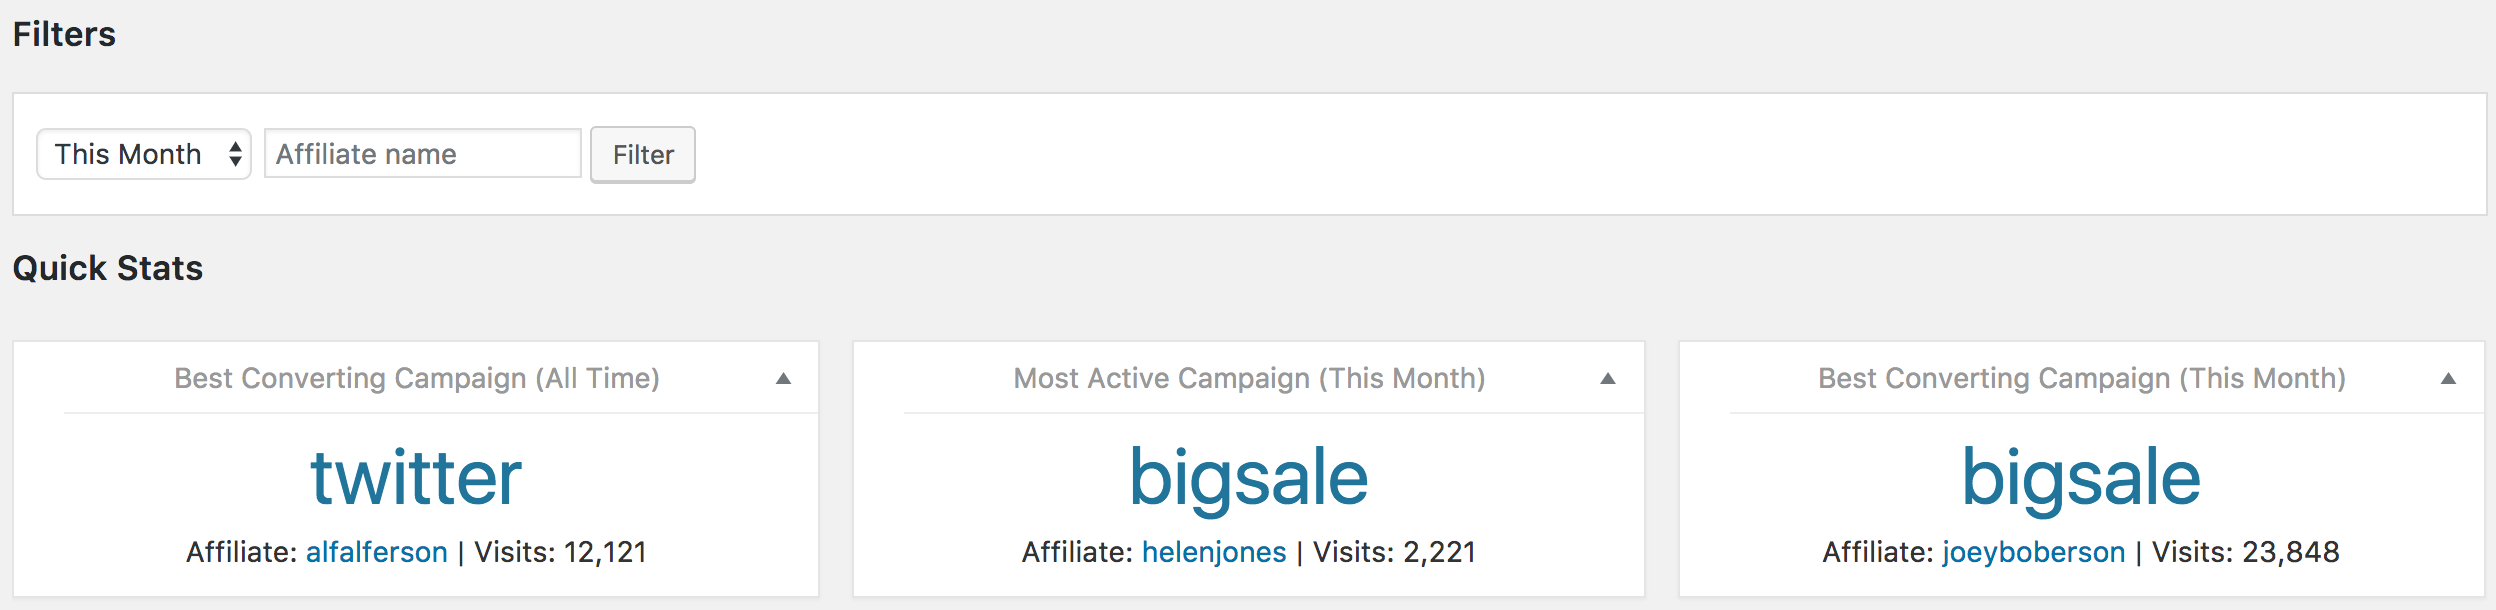 Viewing campaign data in the reports section of AffiliateWP.